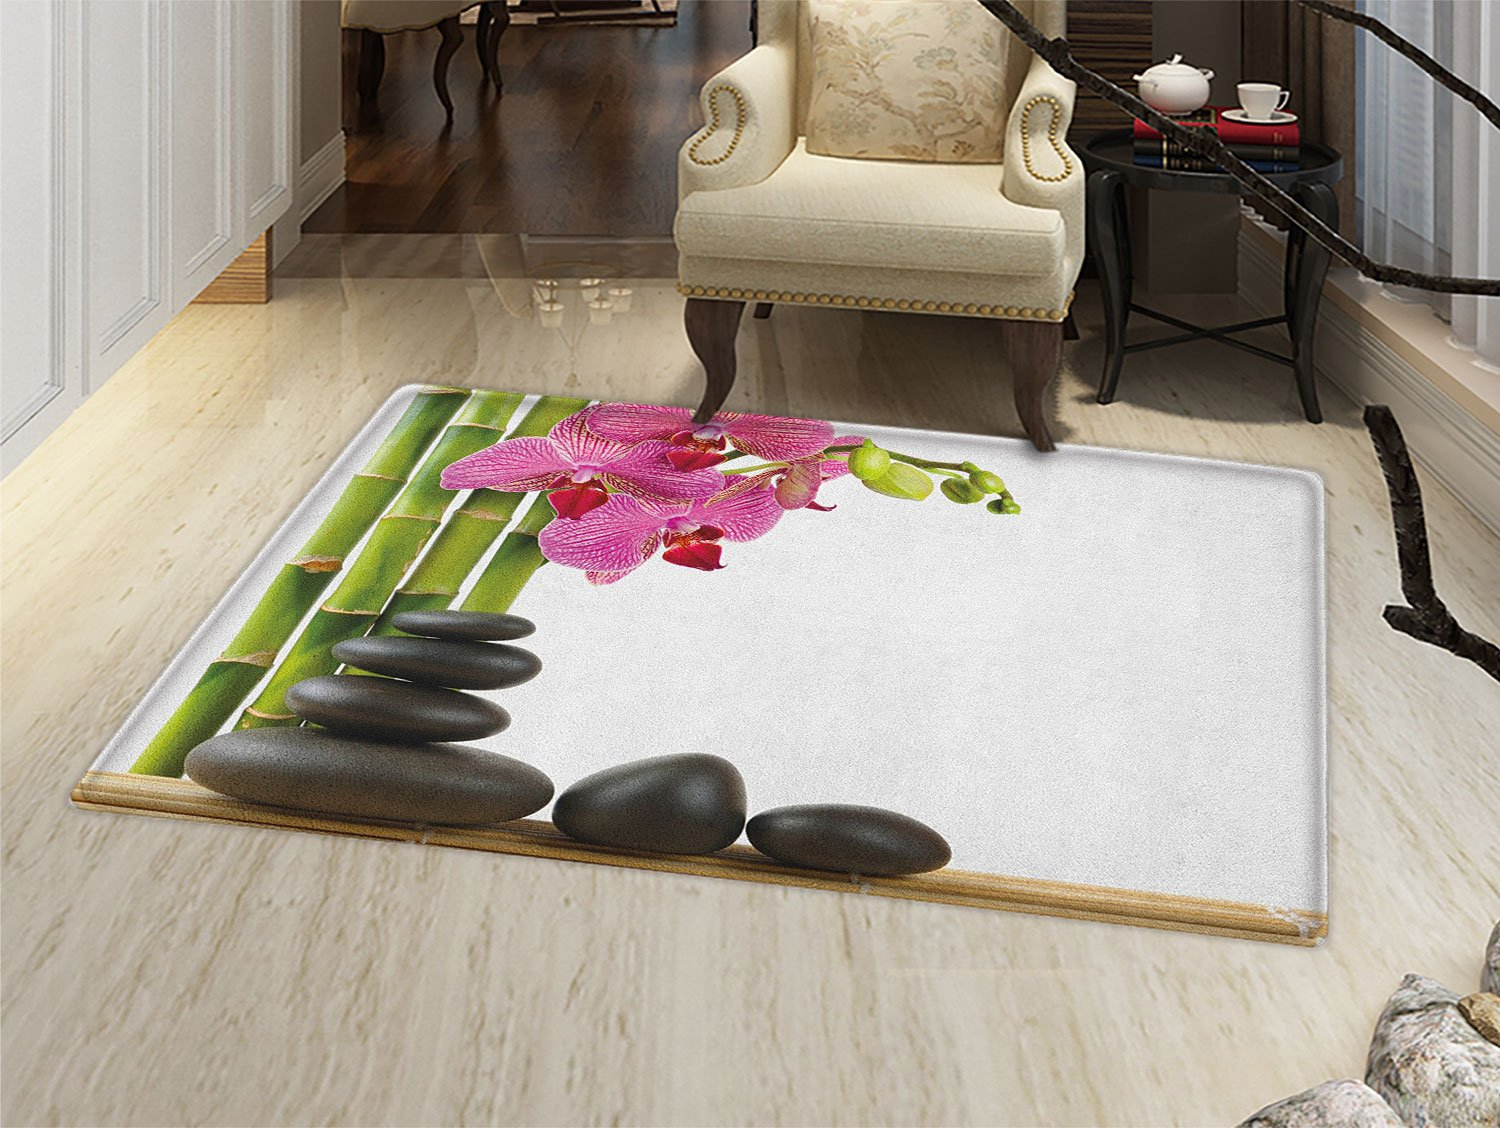 Spa Bath Mat non slip Beautiful Pink Orchid with Bamboos and Black Hot Stone Massage Image Print Customize door mats for home Mat Pink Green and Black